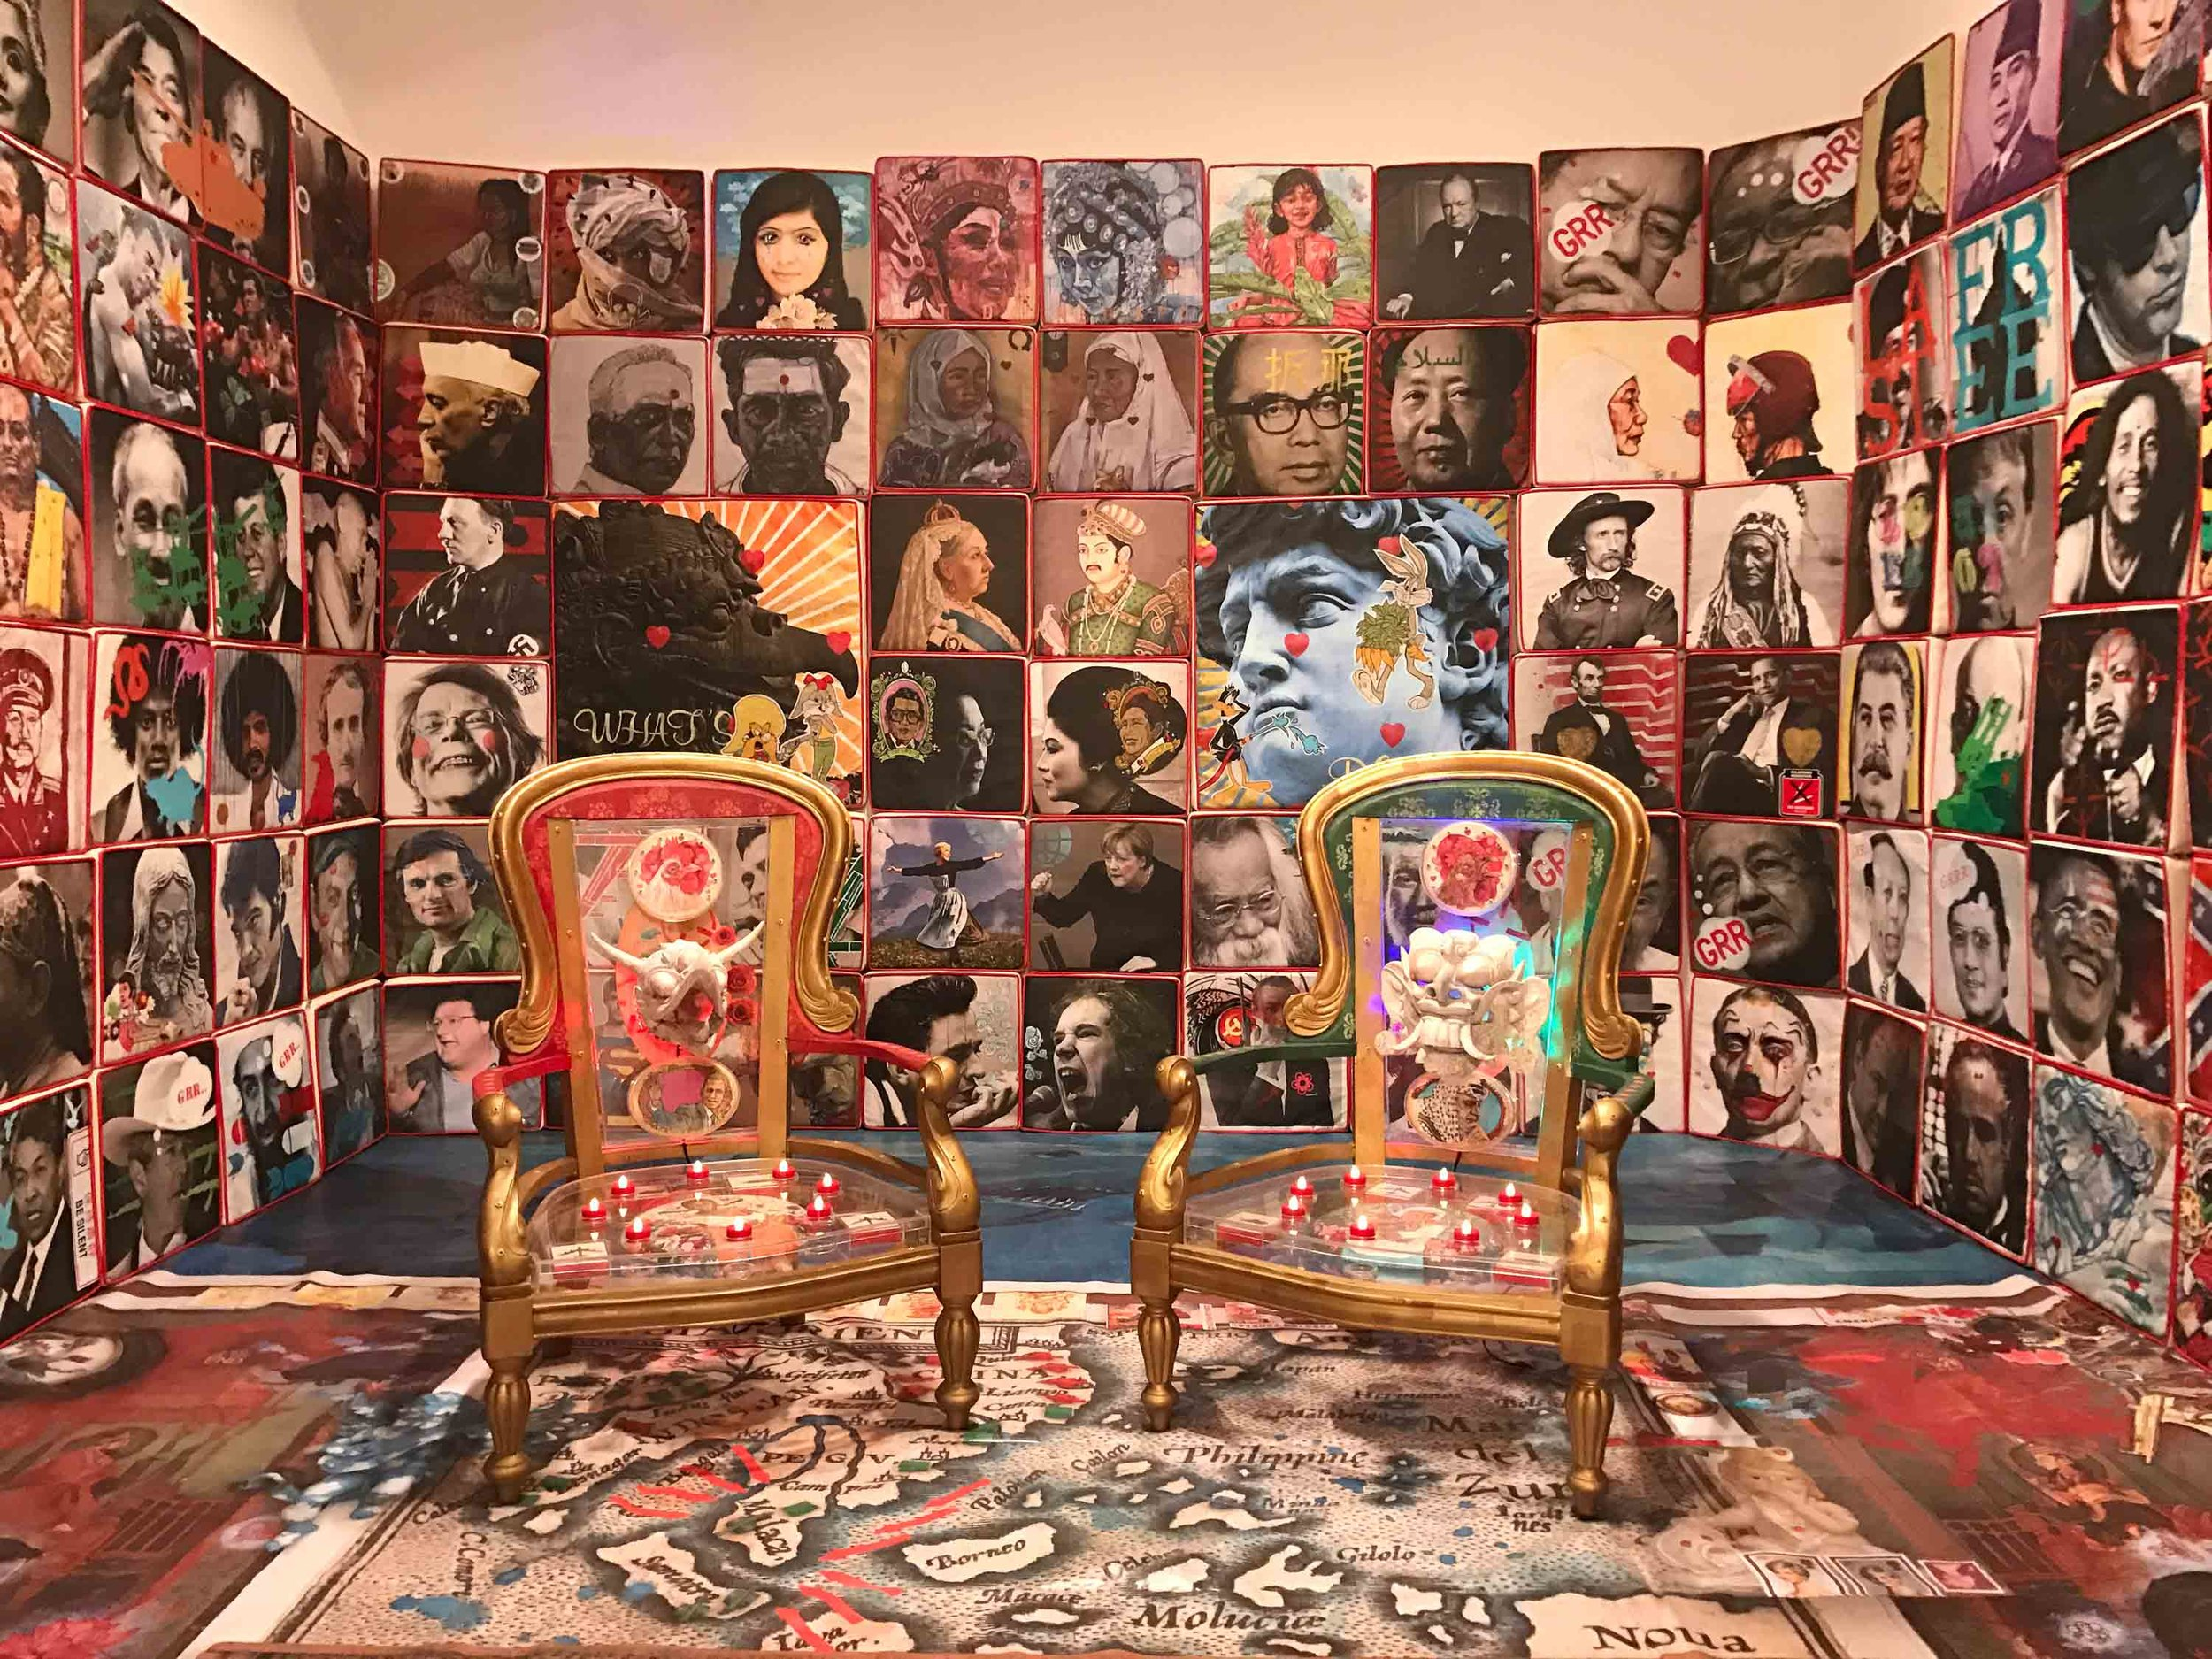 Anurendra Jegadeva, 'Yesterday, in a Padded Room', 2015, PVC cushions with printed and painted canvas, two painted thrones with perspex boxes, painted inserts and LED lights, printed floor covering on wood, dimensions variable. Image courtesy of the artist.